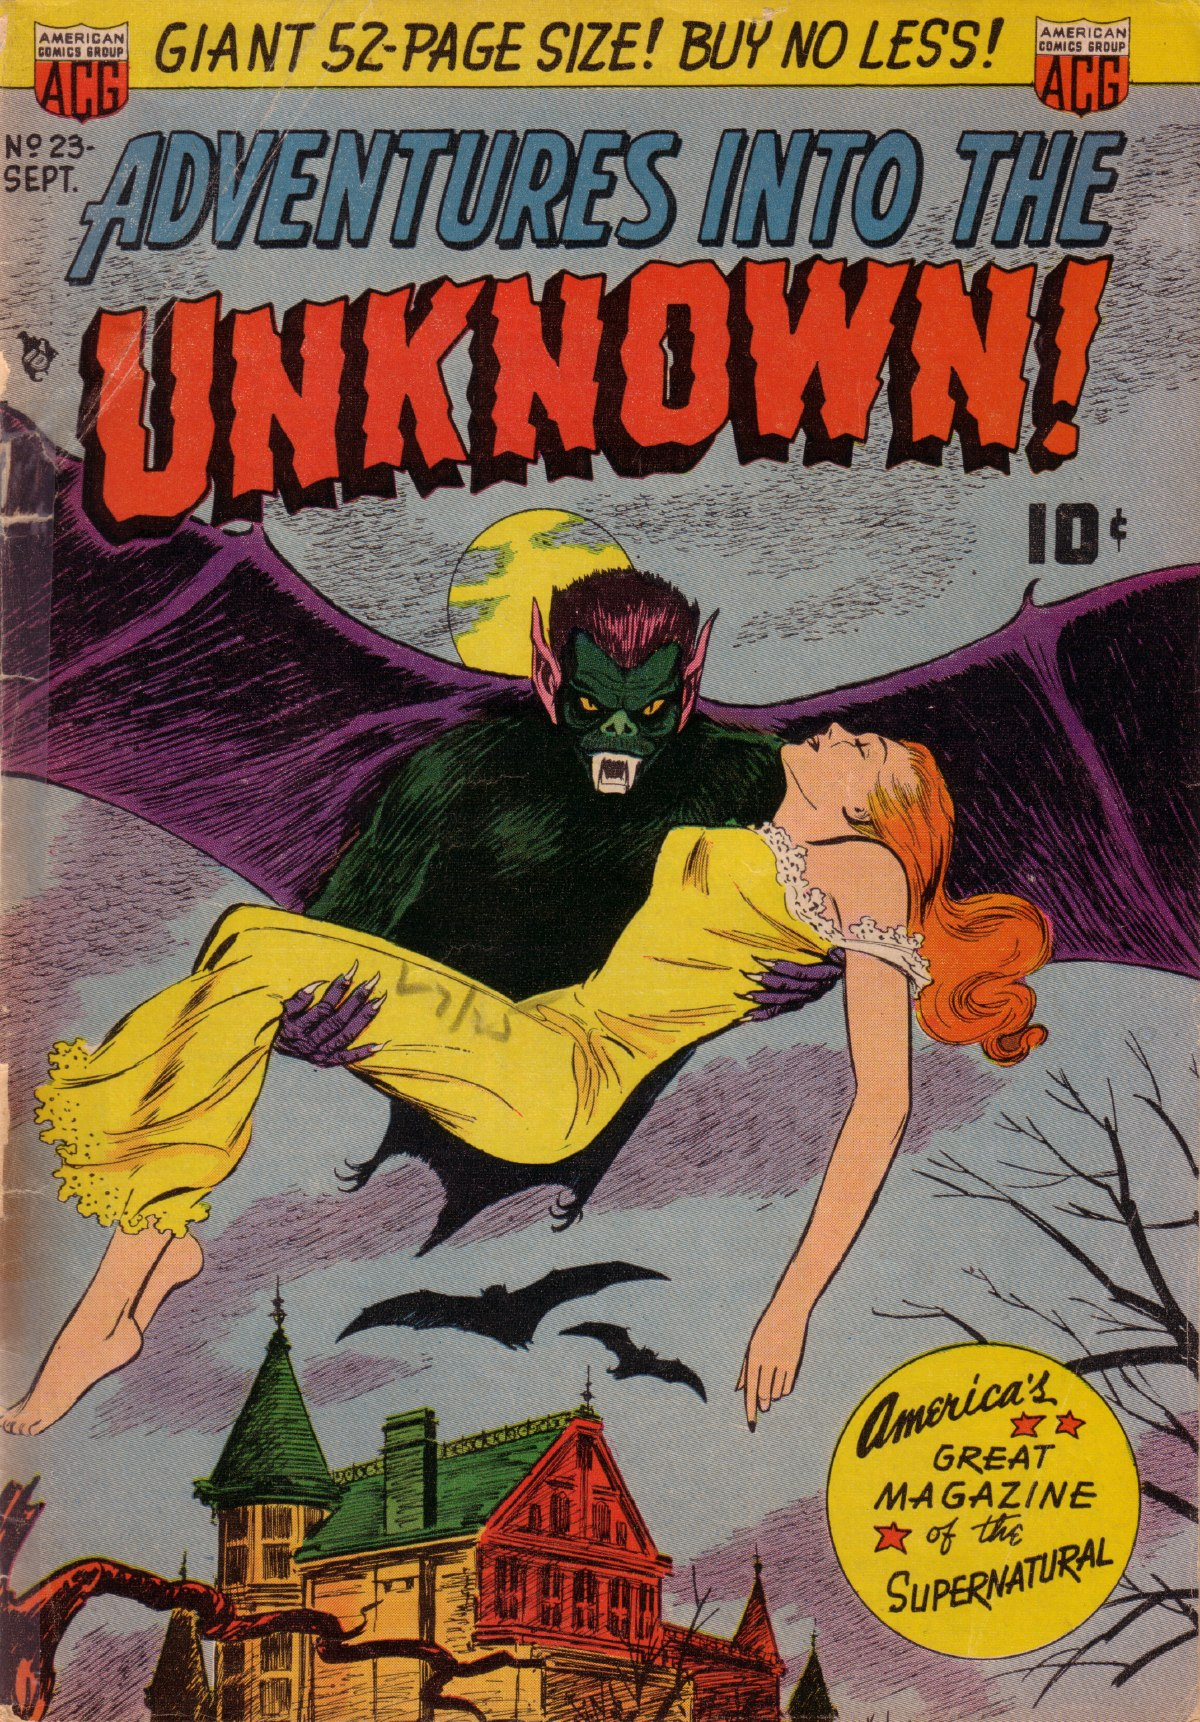 Adventures Into the Unknown (1948) #23, cover by Ken Bald.